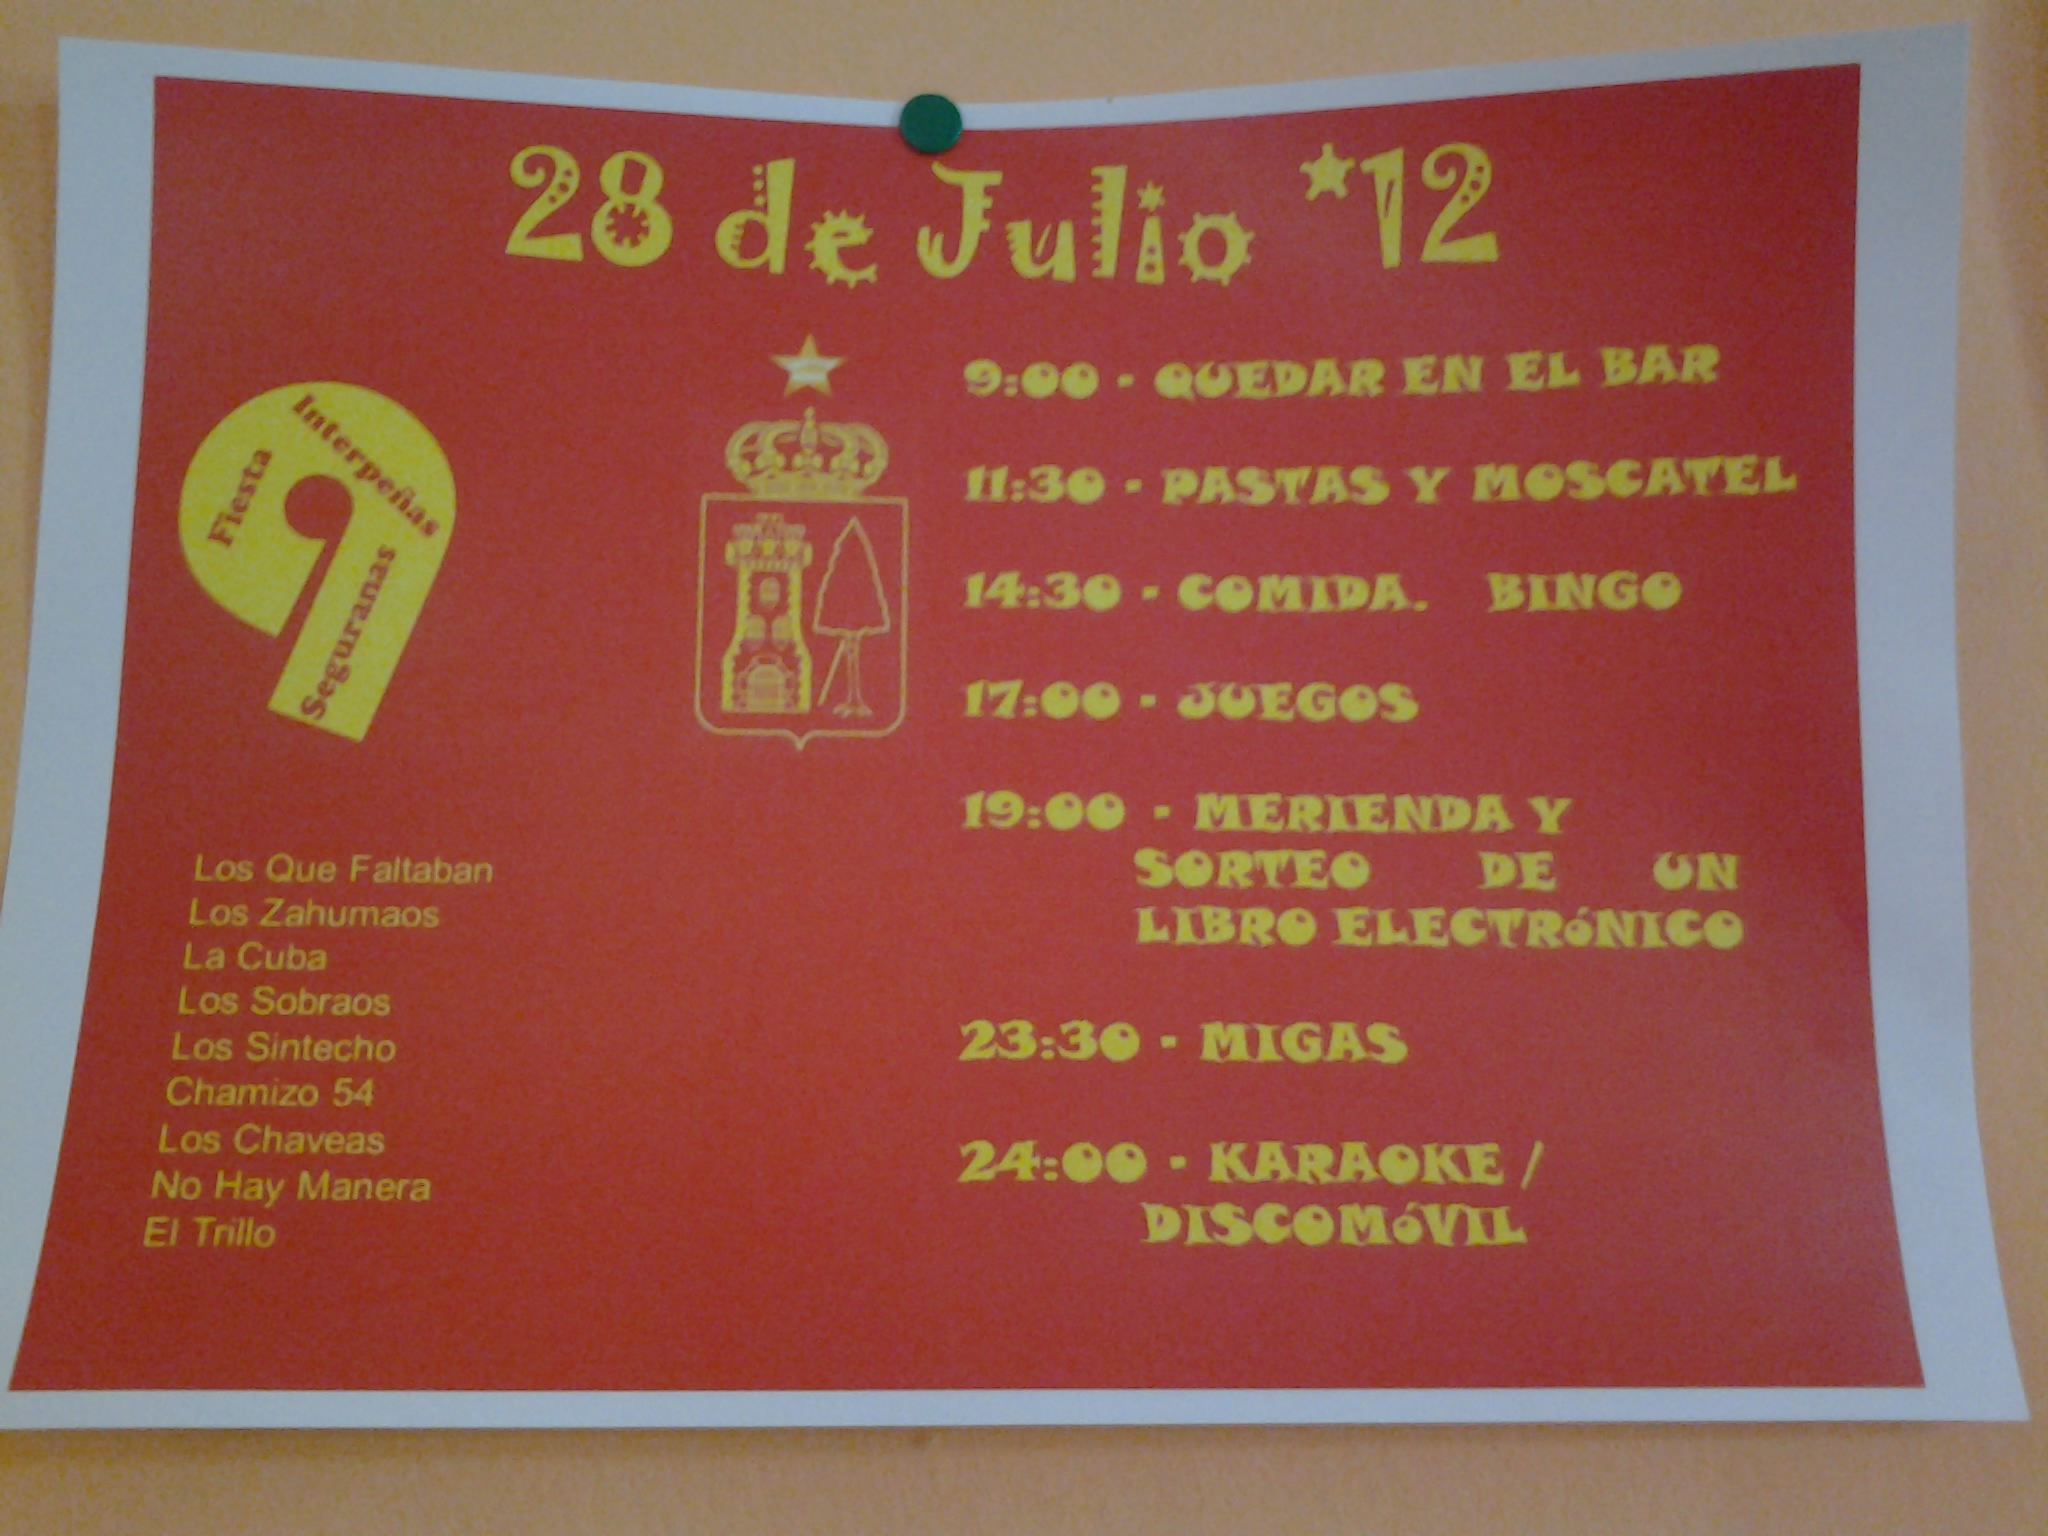 Cartel 9ª Fiesta Interpeñas